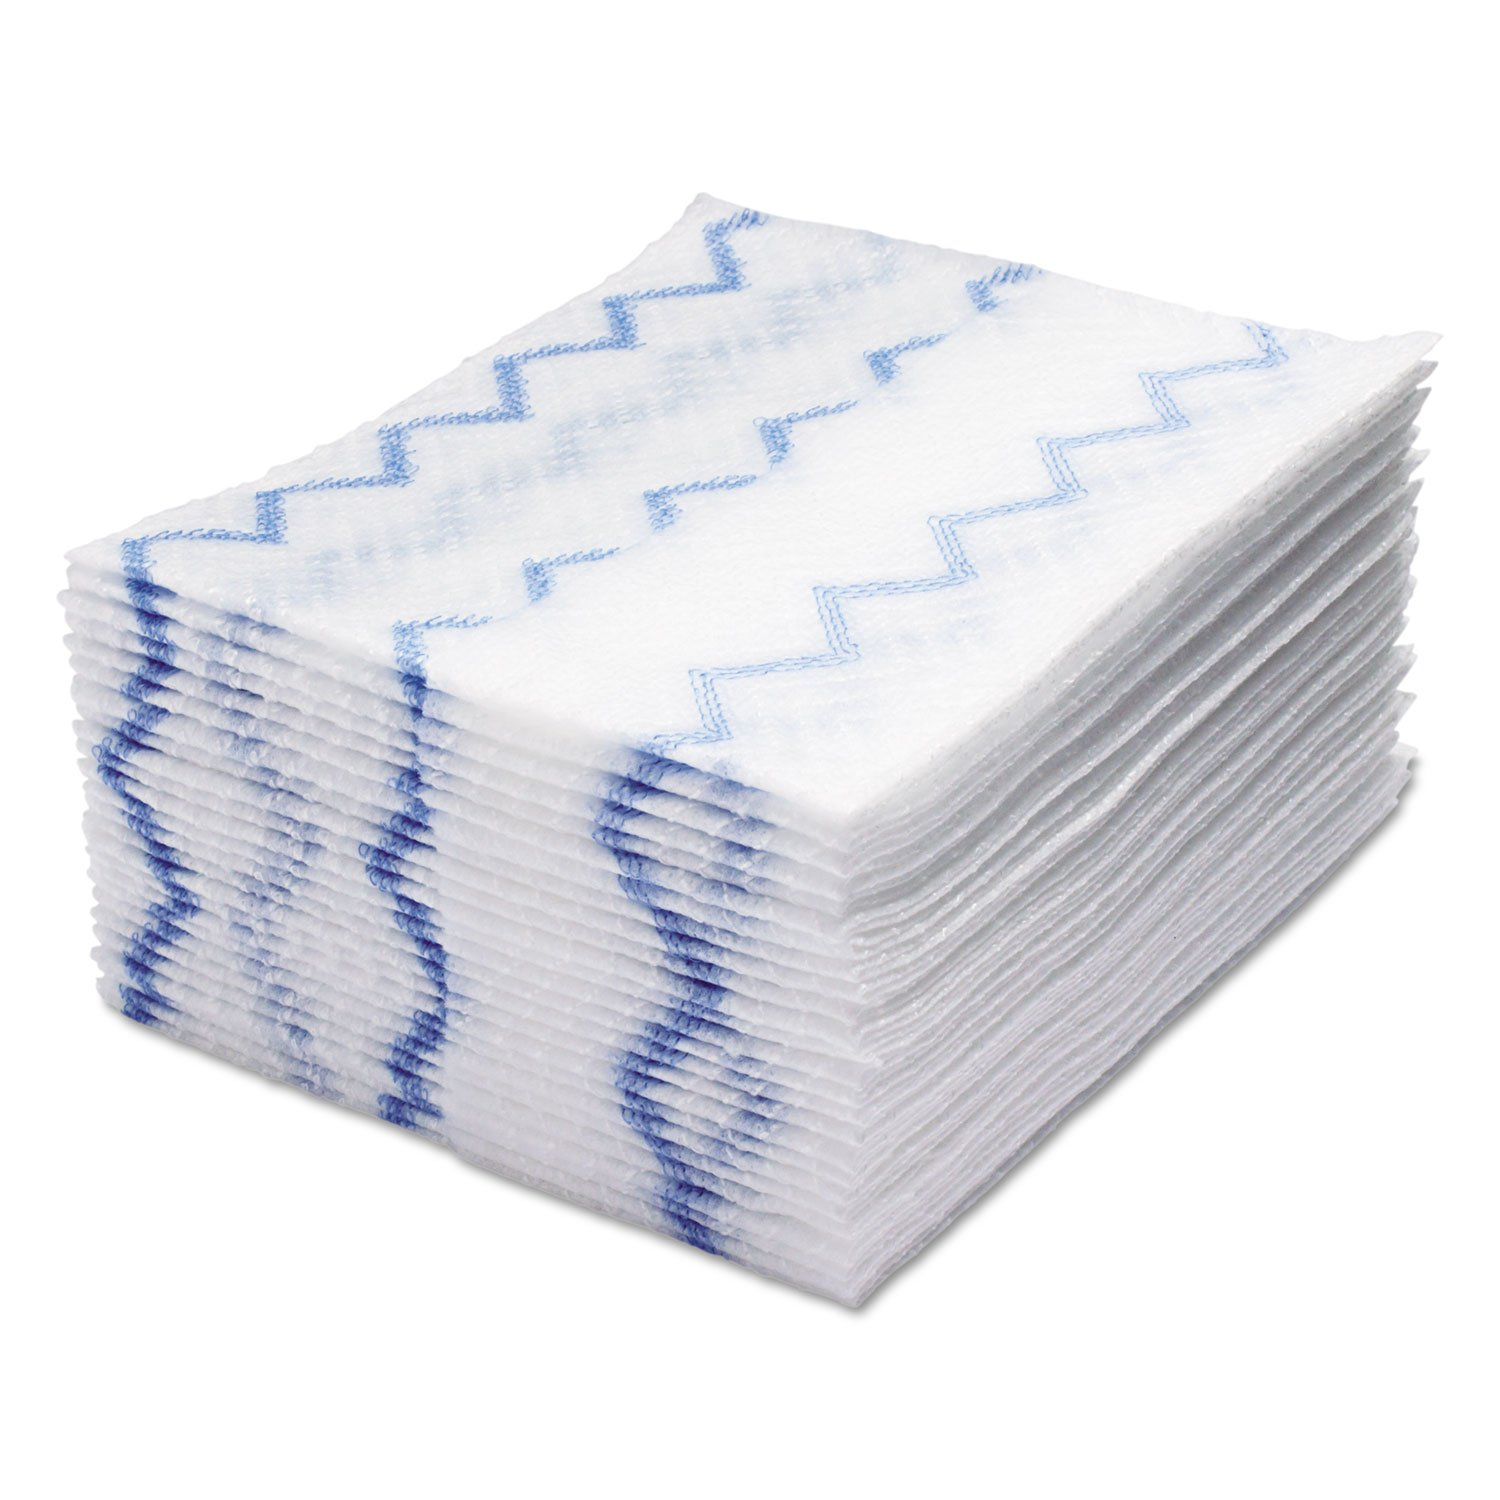 Rubbermaid 1928023 HYGEN Disposable Microfiber Cleaning Cloths White/Blue 12.2 x 14.3 640/Pack